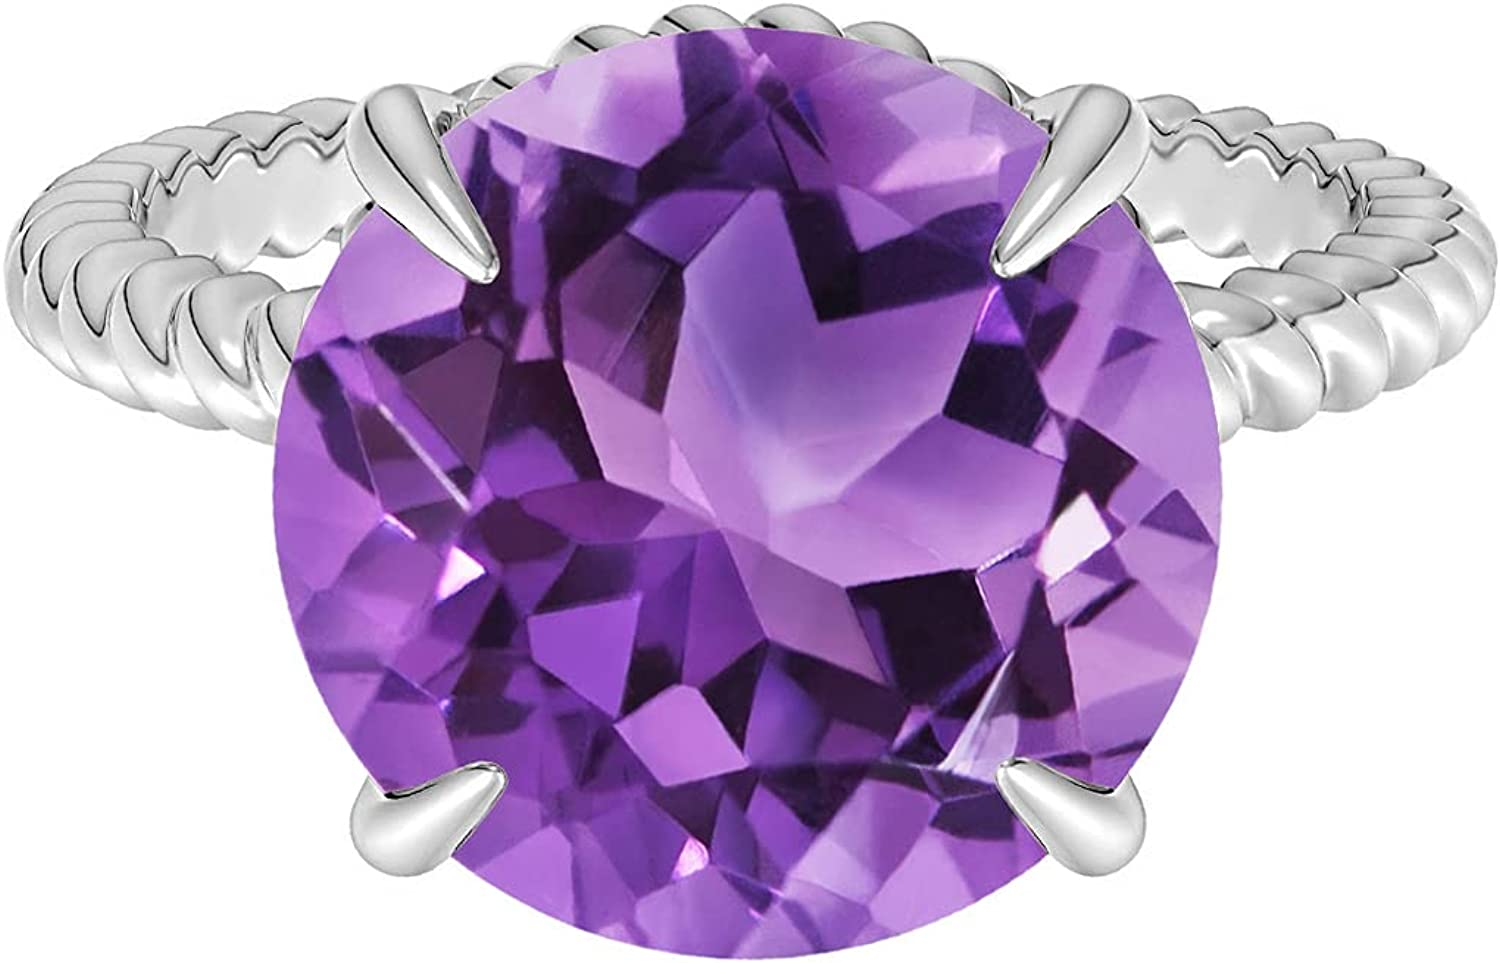 Shine Jewel Max 67% OFF 1.25 CTW Round Gemstone Cocktail Amethyst Outlet sale feature 925 Silver